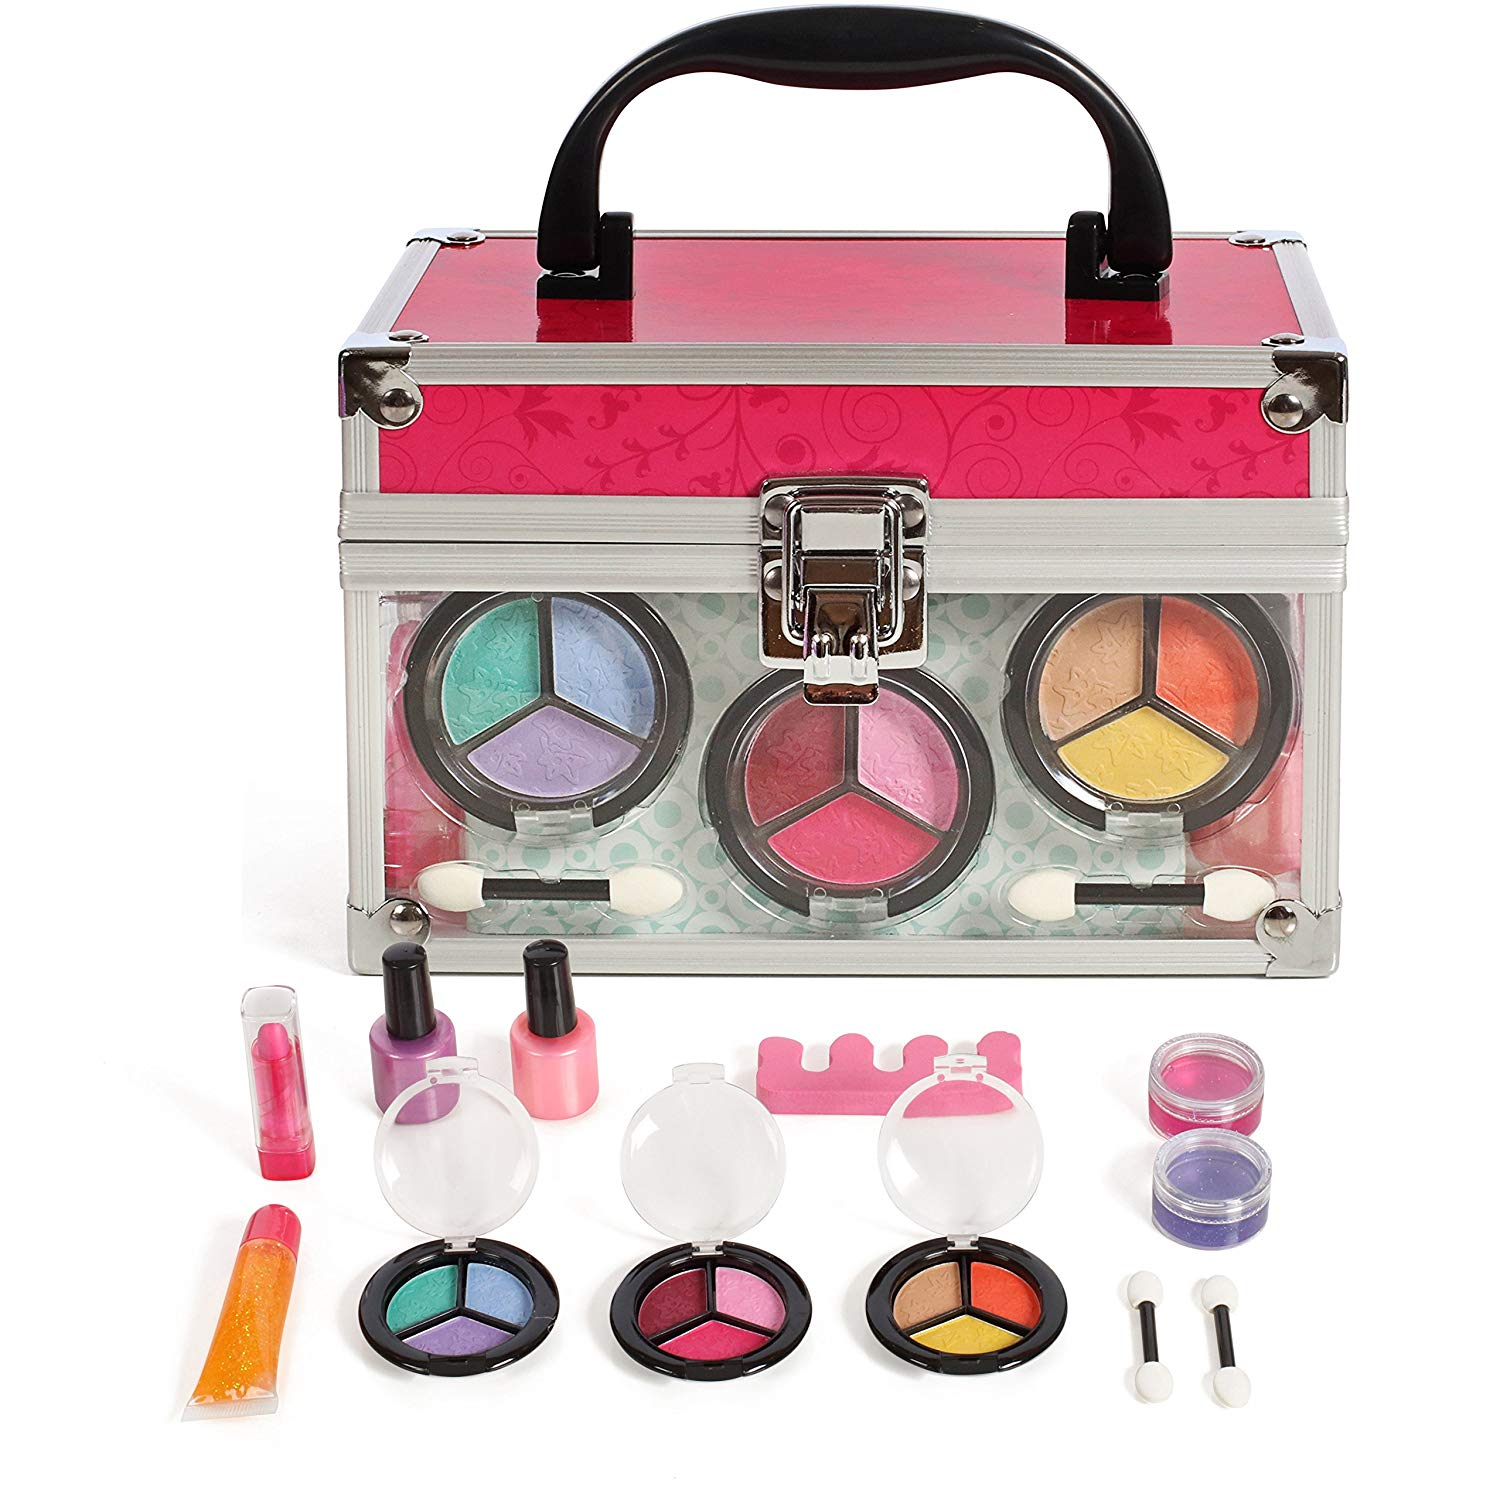 IQ Toys Girls Cosmetic Makeup Set in a Sturdy and Long Lasting Clear case, Mirror Included